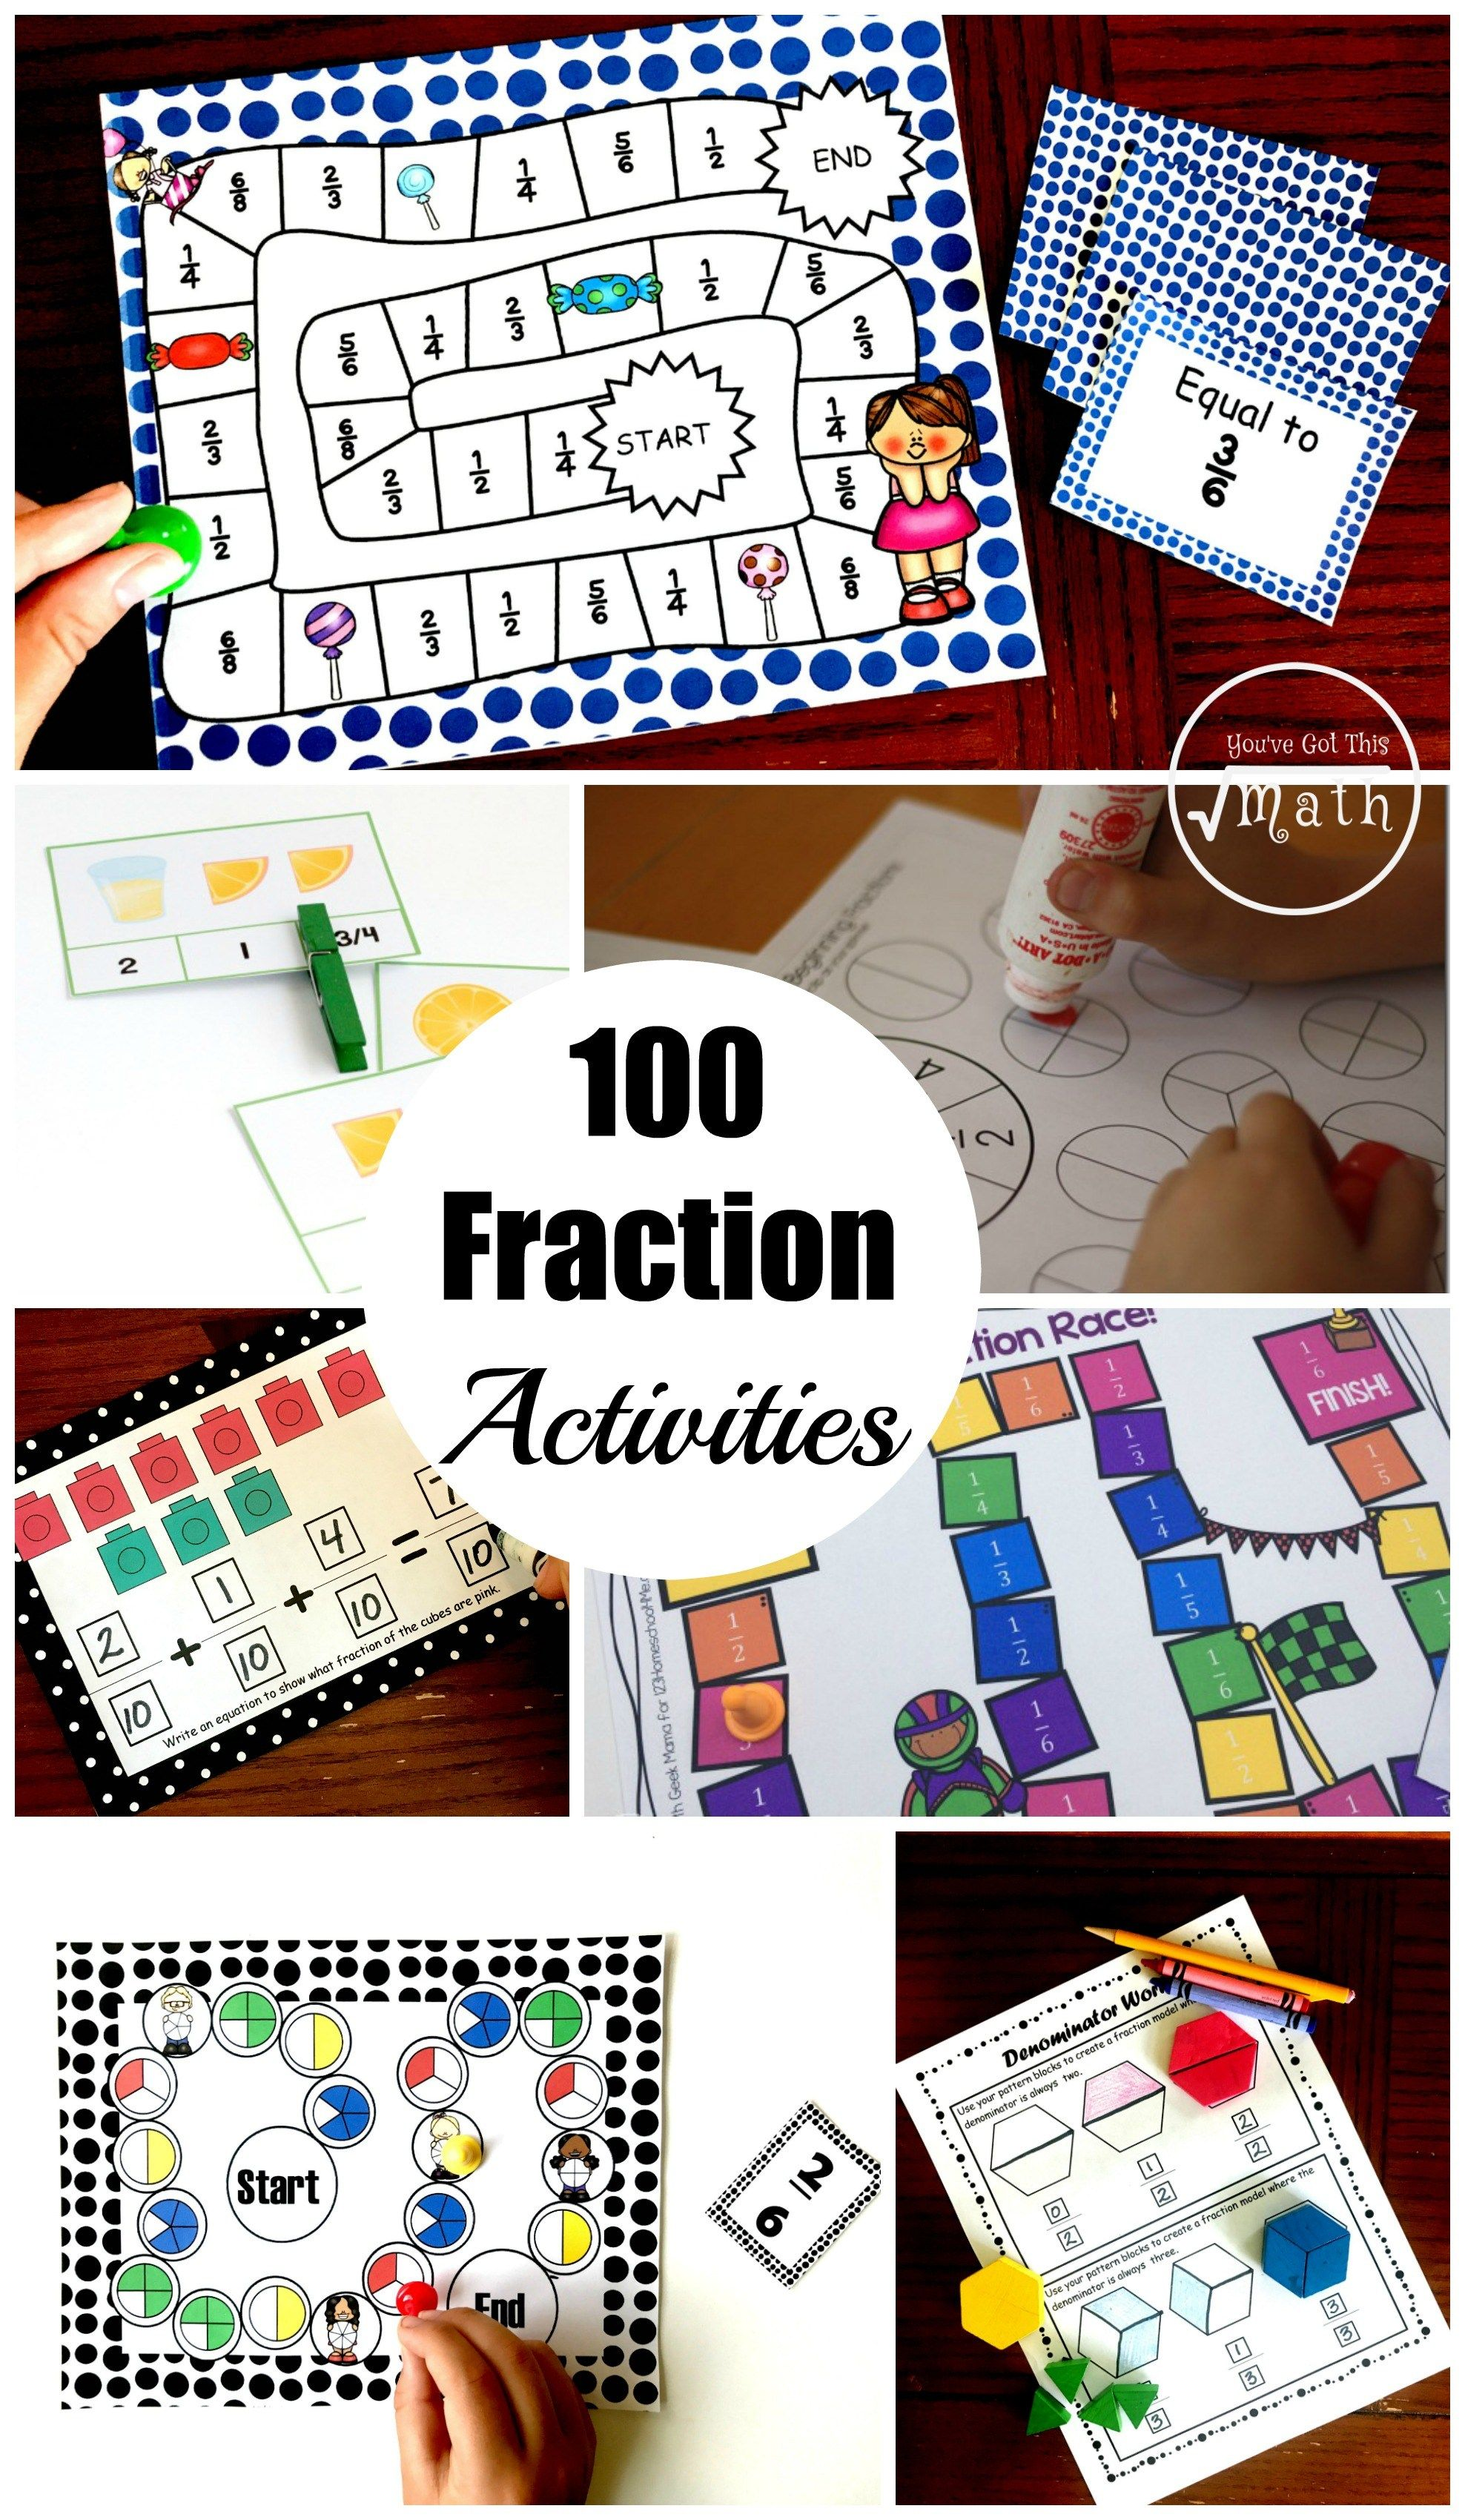 100 Fraction Activities To Help Your Students Master